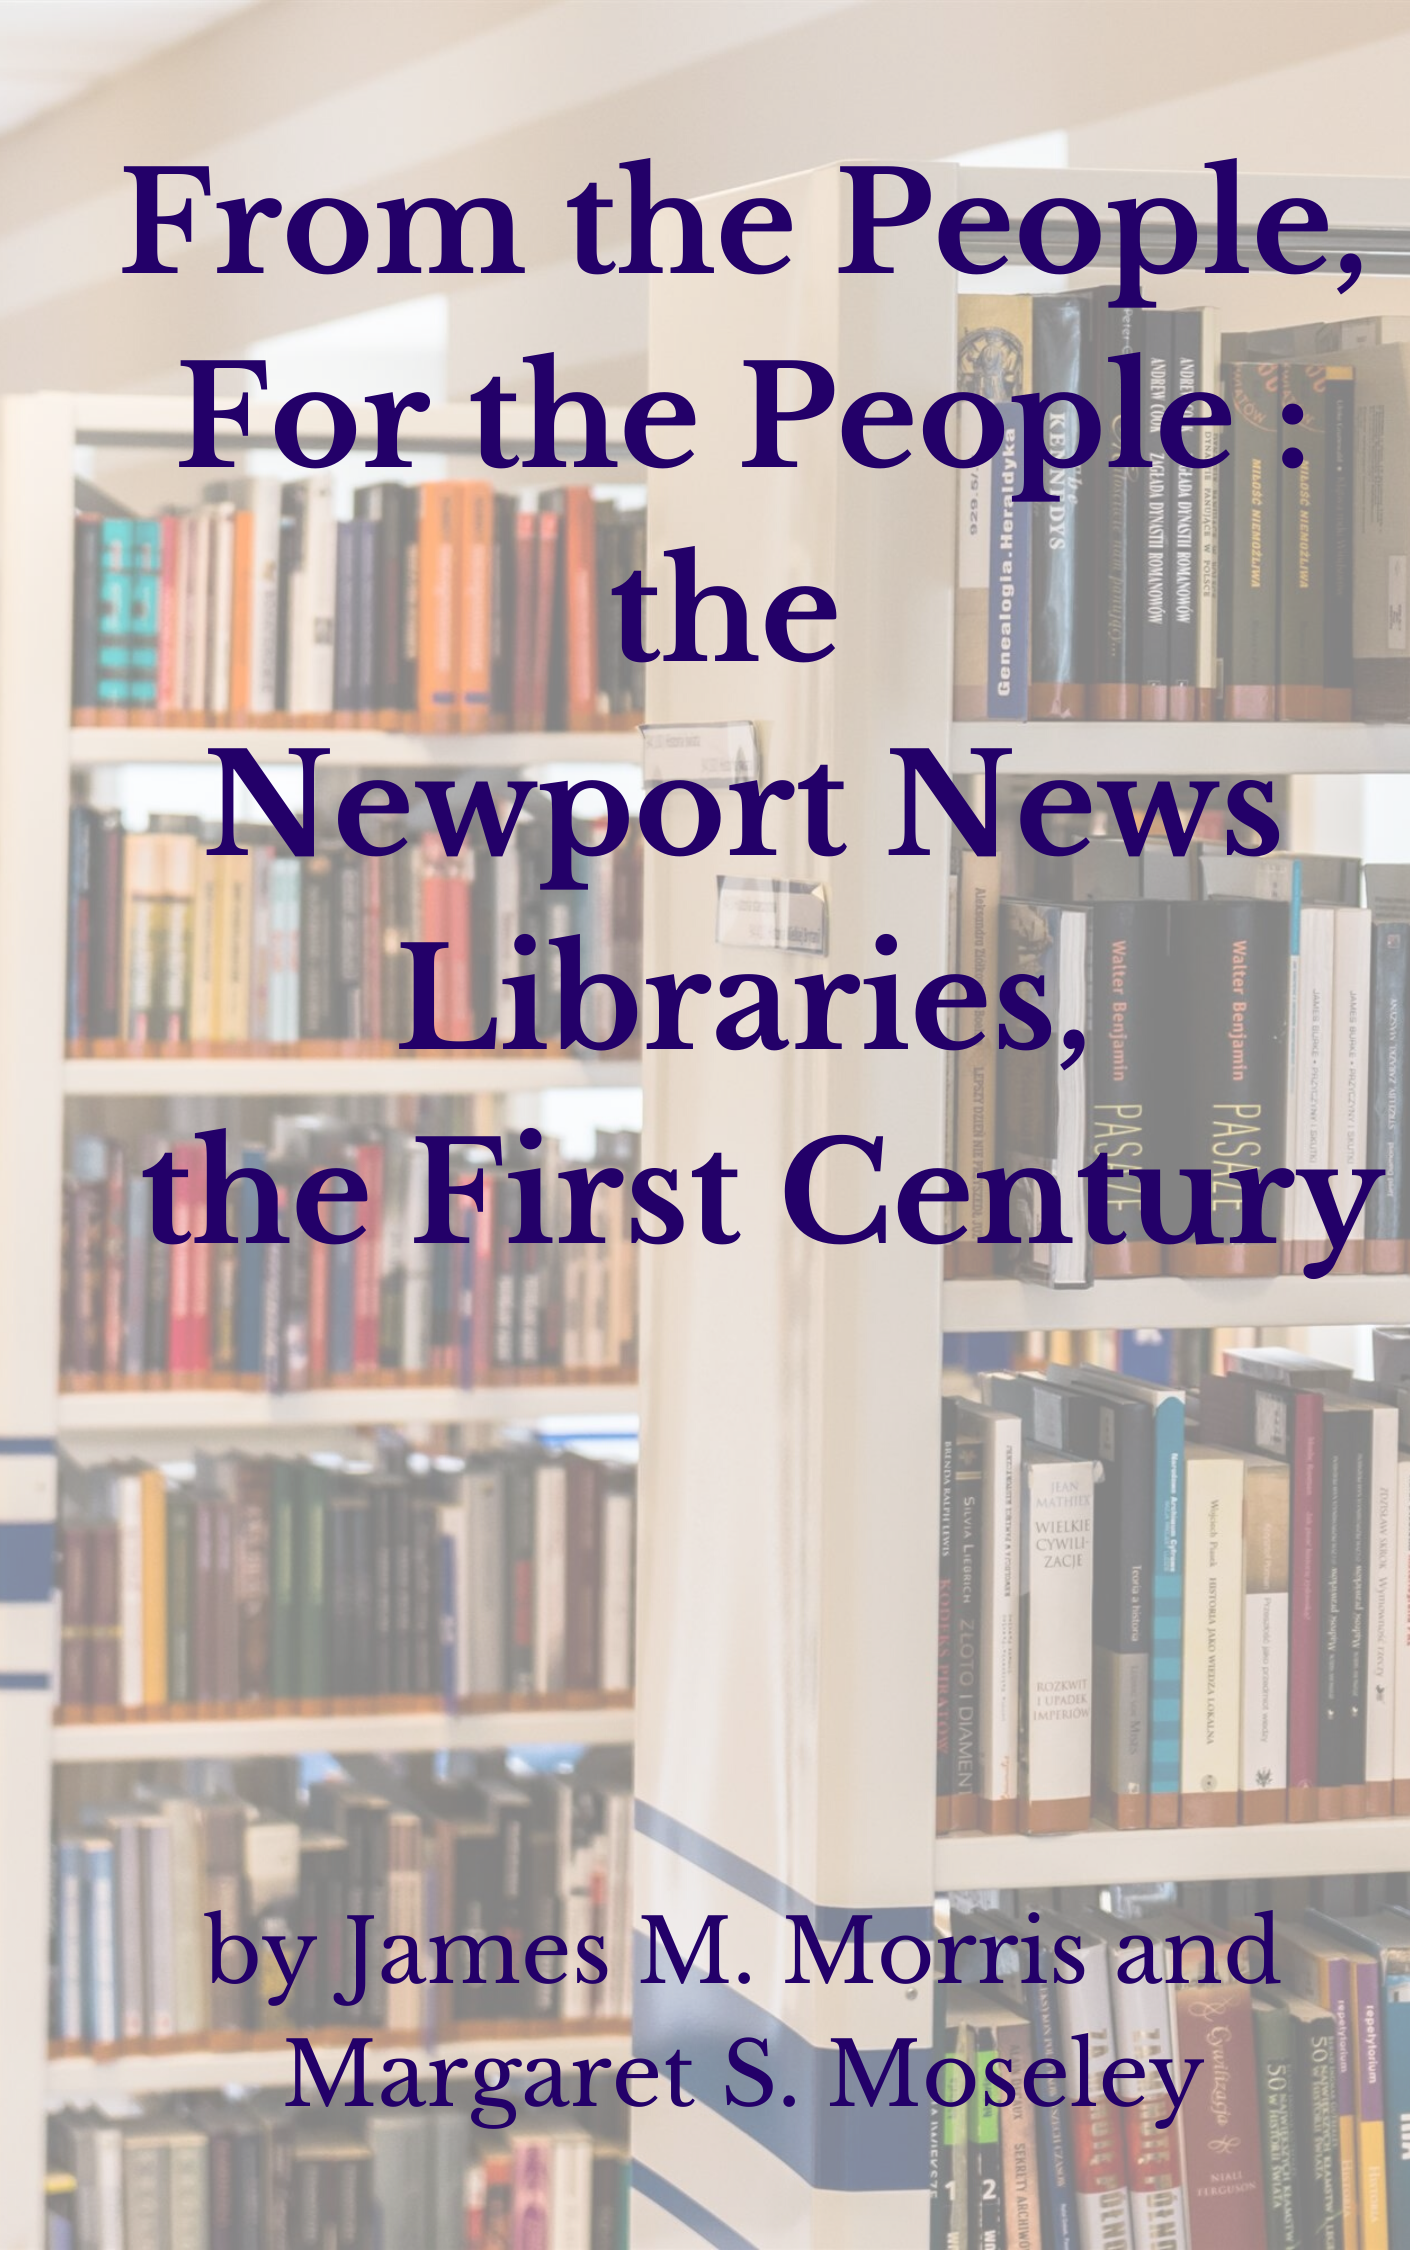 From the People, For the People: The Newport News Libraries, the First Century